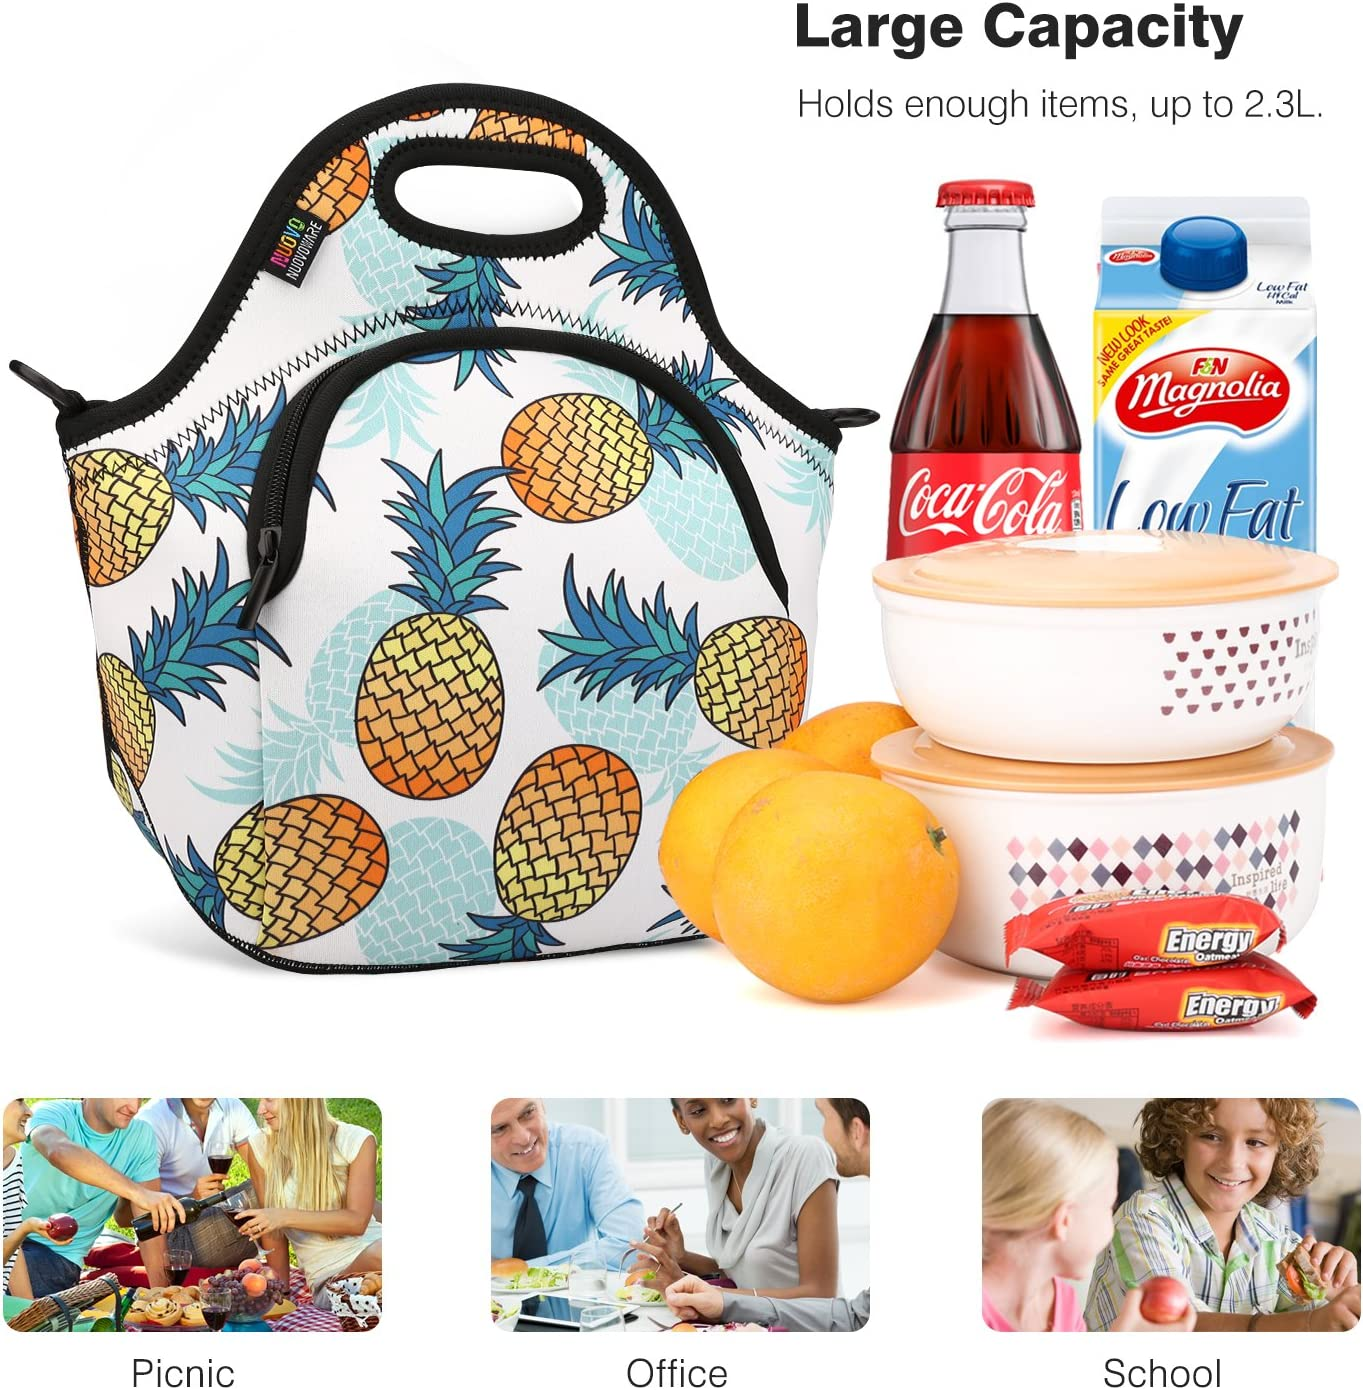 Nuovoware Neoprene Lunch Tote Reusable Picnic Bag Soft Thermal Cooler Tote Multi-Purpose Grocery Container with Adjustable Crossbody Strap and Front Zipper Pockets Insulated Lunch Bag Pineapple